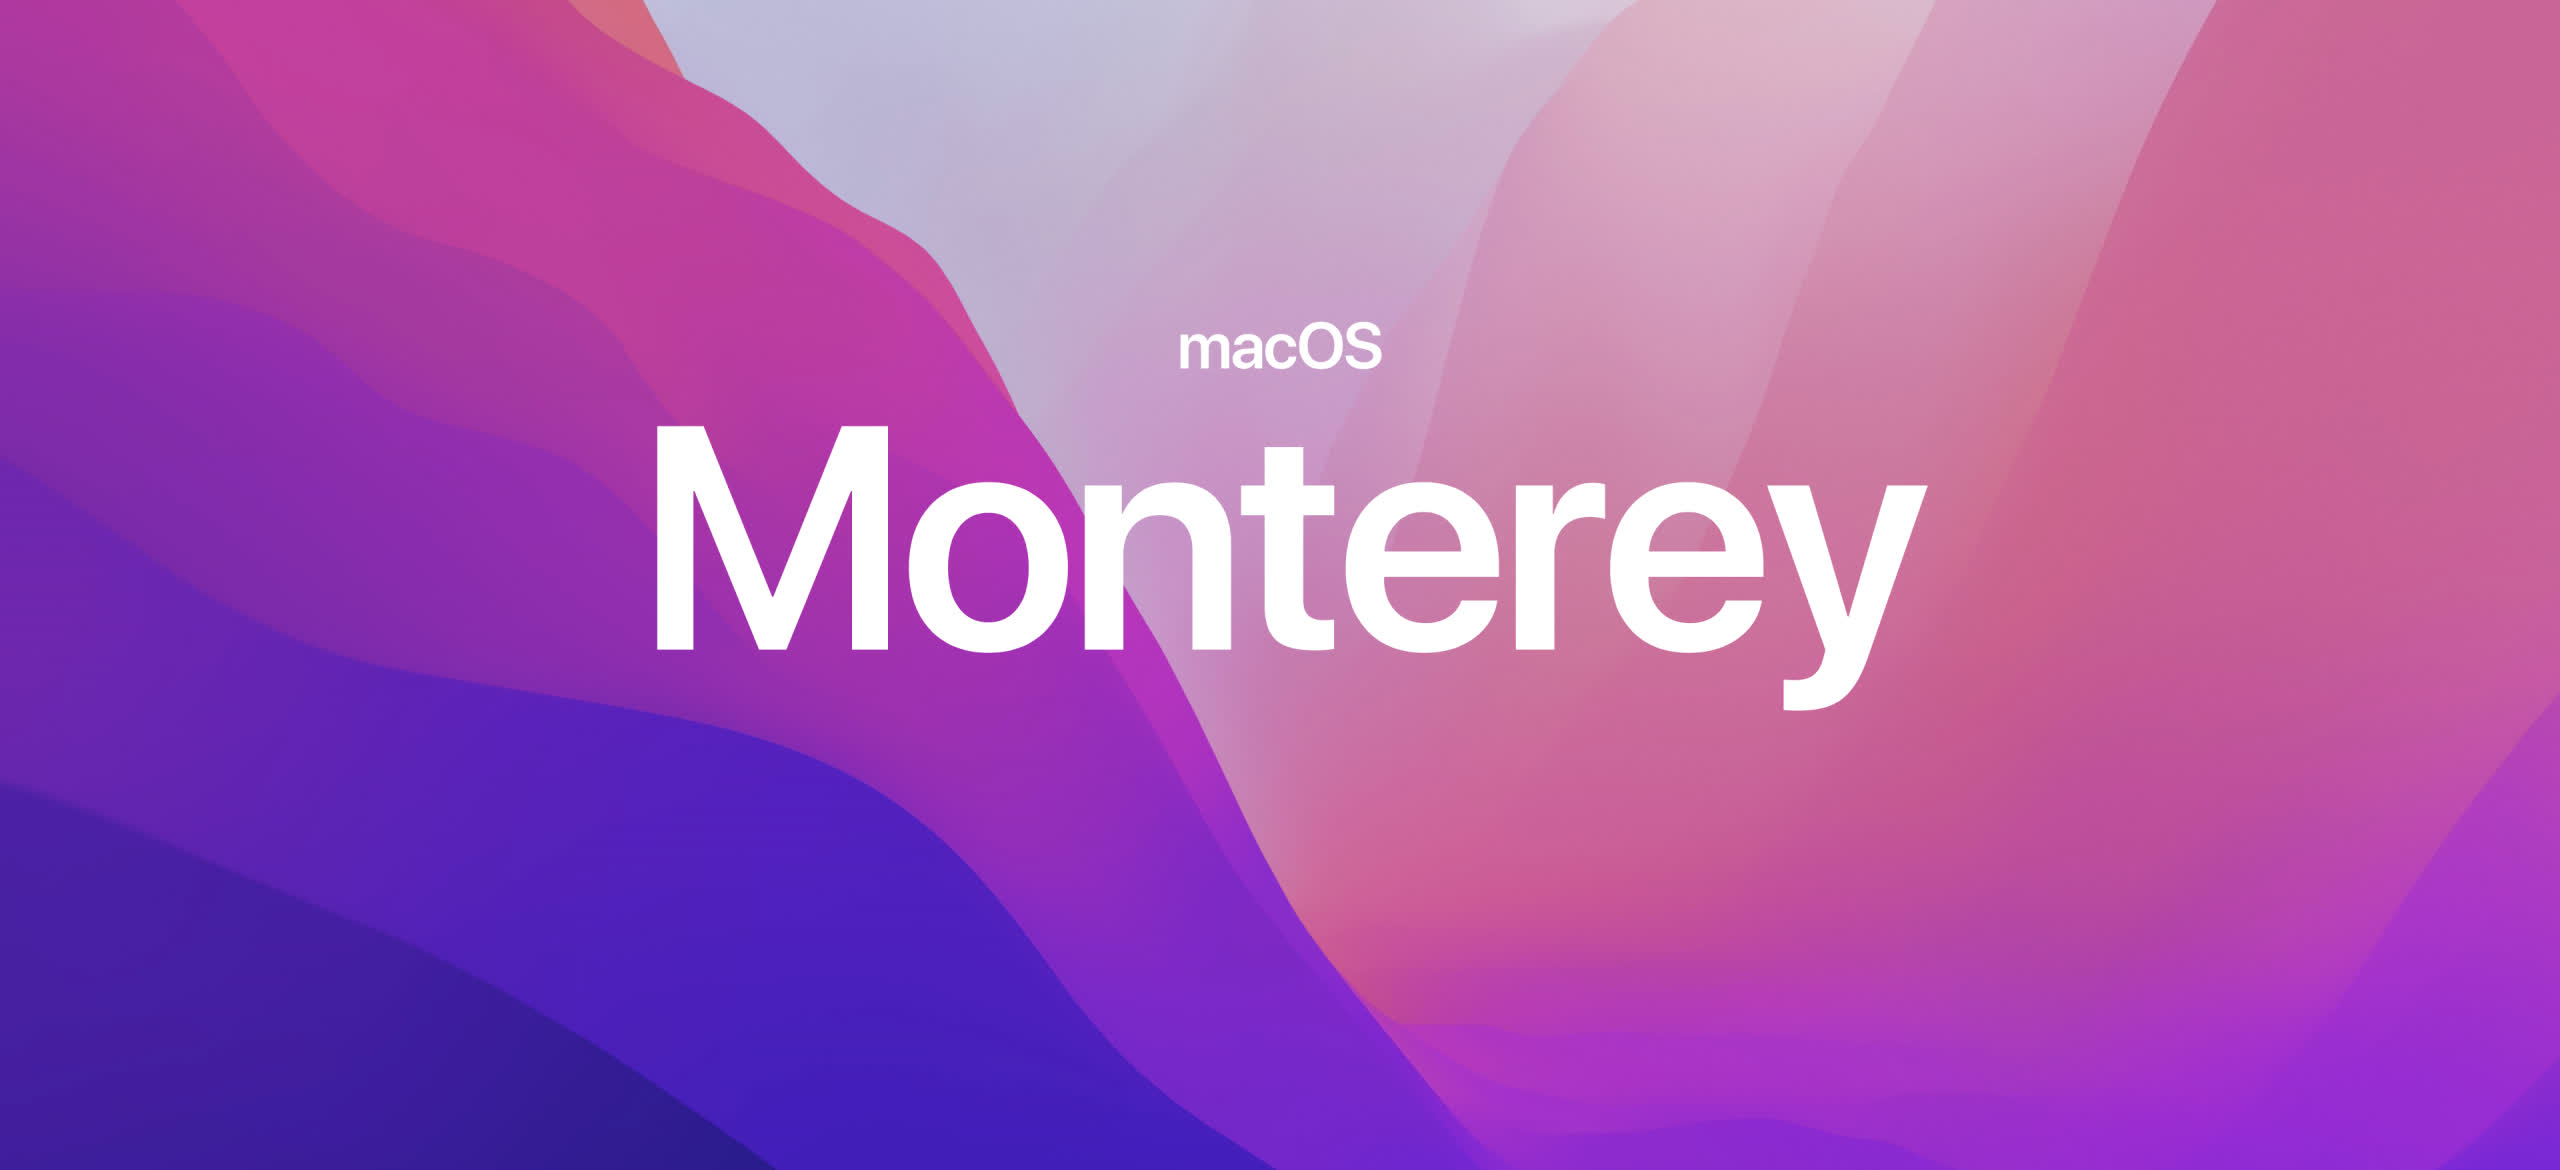 Some of macOS Monterey's best features won't work with Intel-based Macs